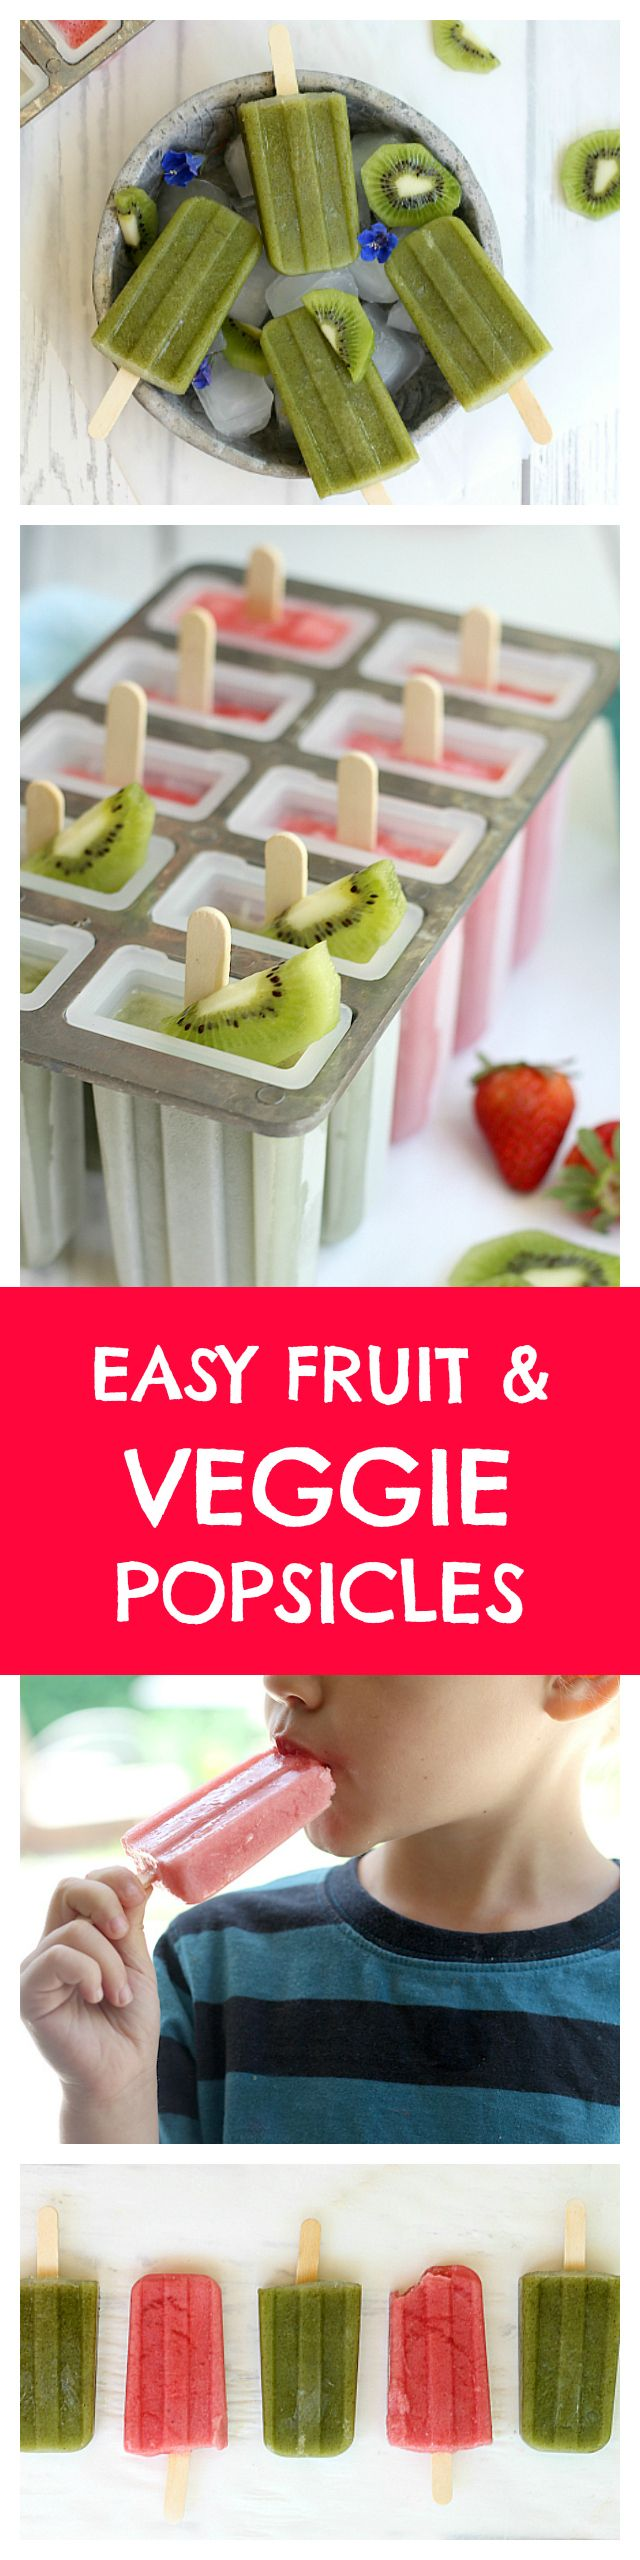 Popsicle recipes made at home are a deliciously healthy alternative to store-bought ice pops. Use whole food fruits and vegetables, blend into a smoothie and freeze with a toothpick, straw or popsicle stick. Enjoy as a frozen healthy snack or dessert! | Delightful Mom Food | #popsiclerecipes, #vegan #popsicles